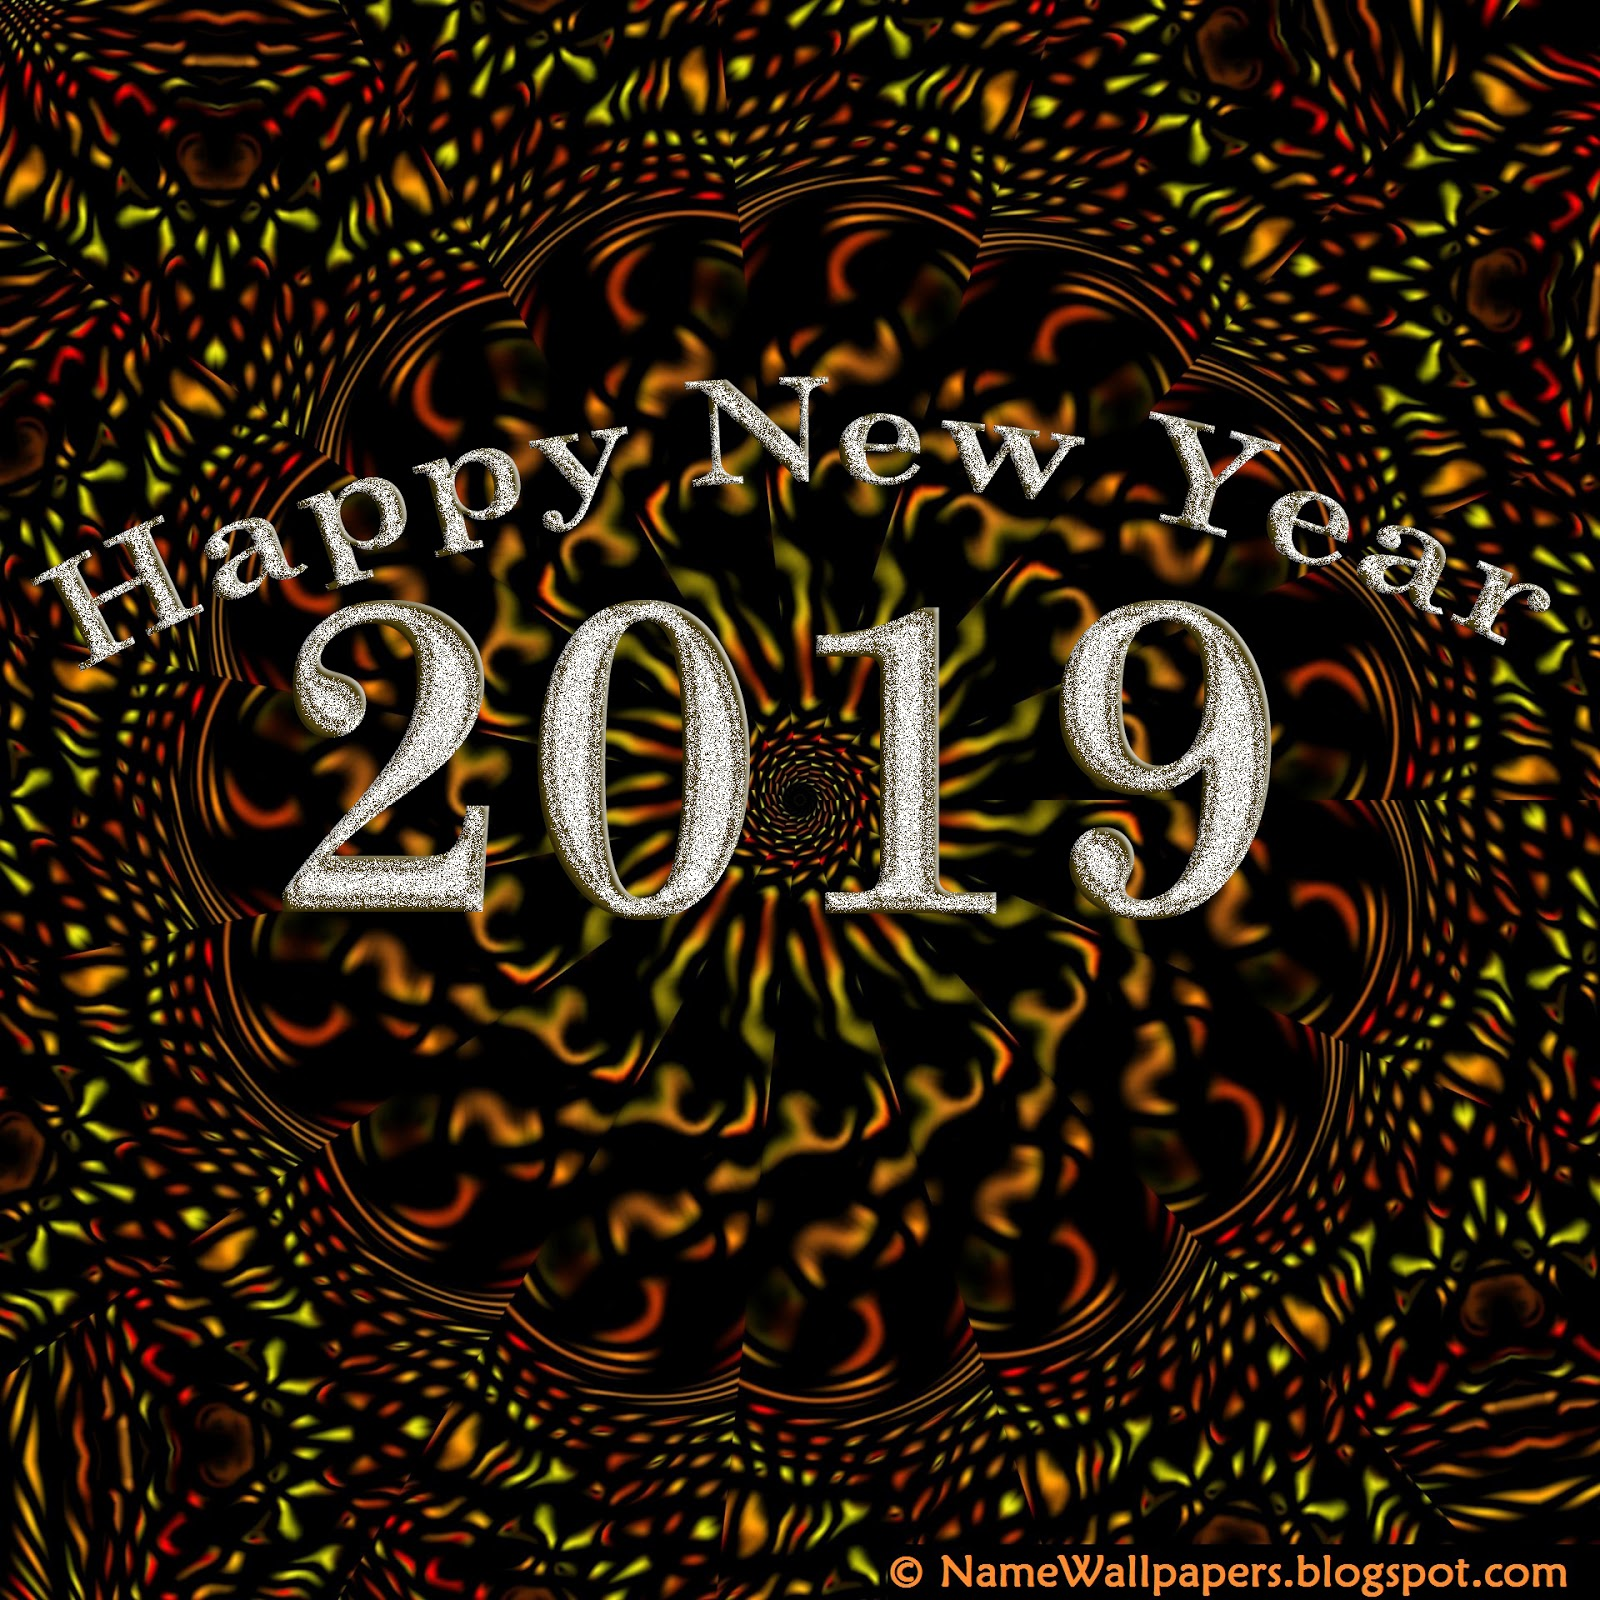 Free download Happy New Year 2019 Images HD Happy New Year 2019